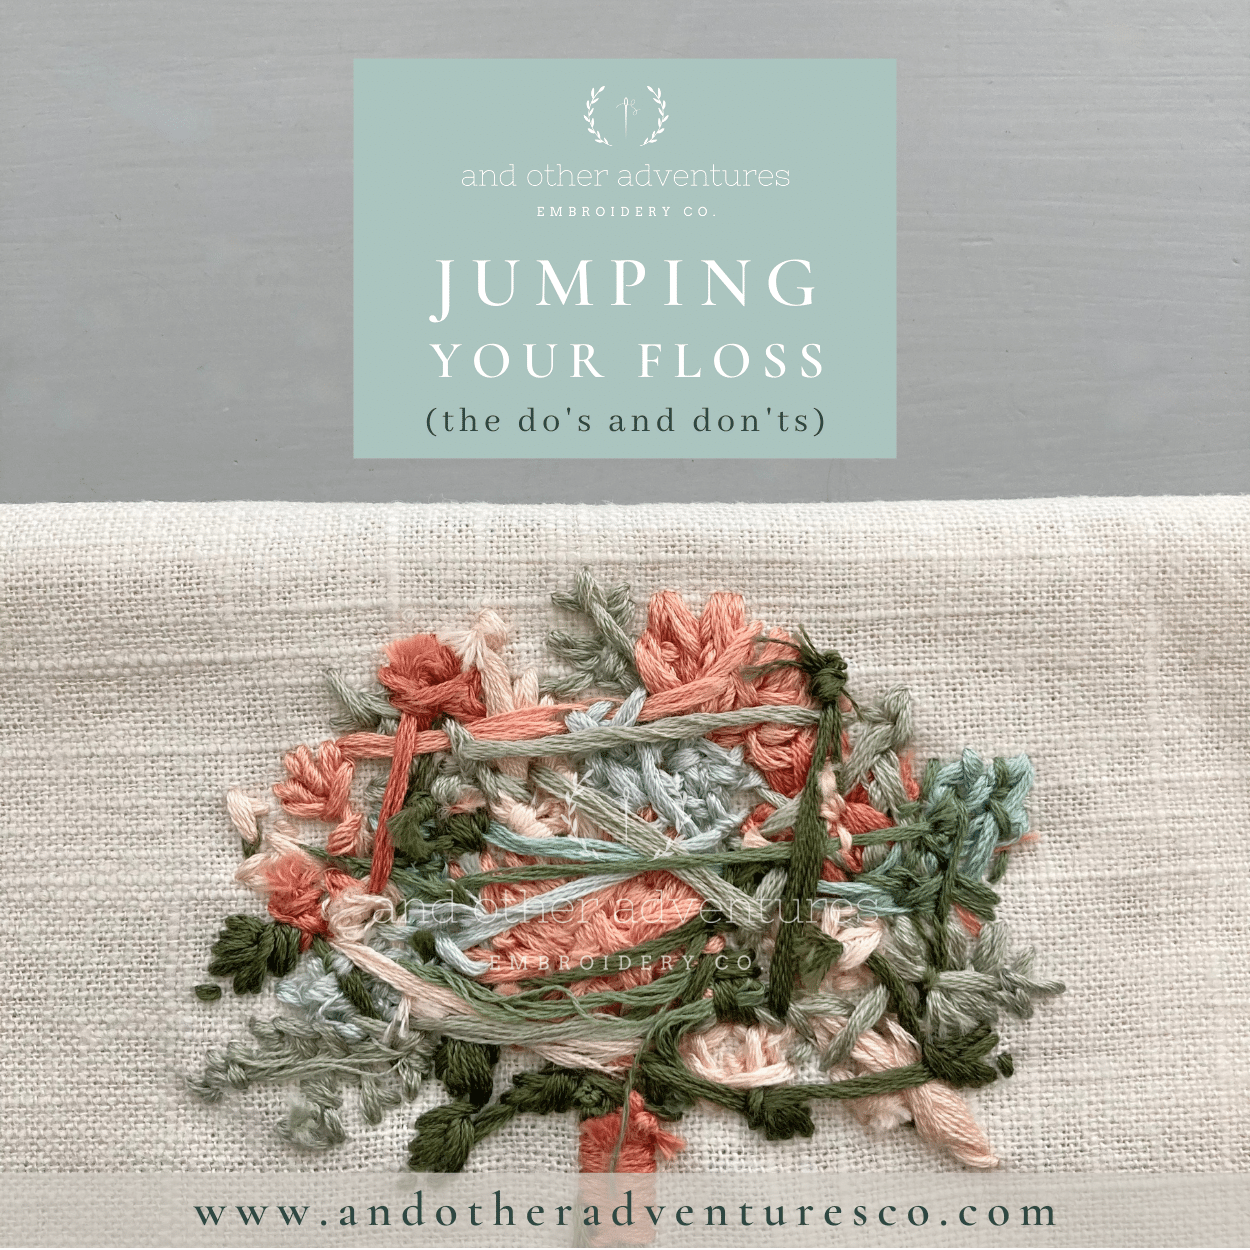 Jumping Your Embroidery Floss the do's and don'ts - And Other Adventures Embroidery Co